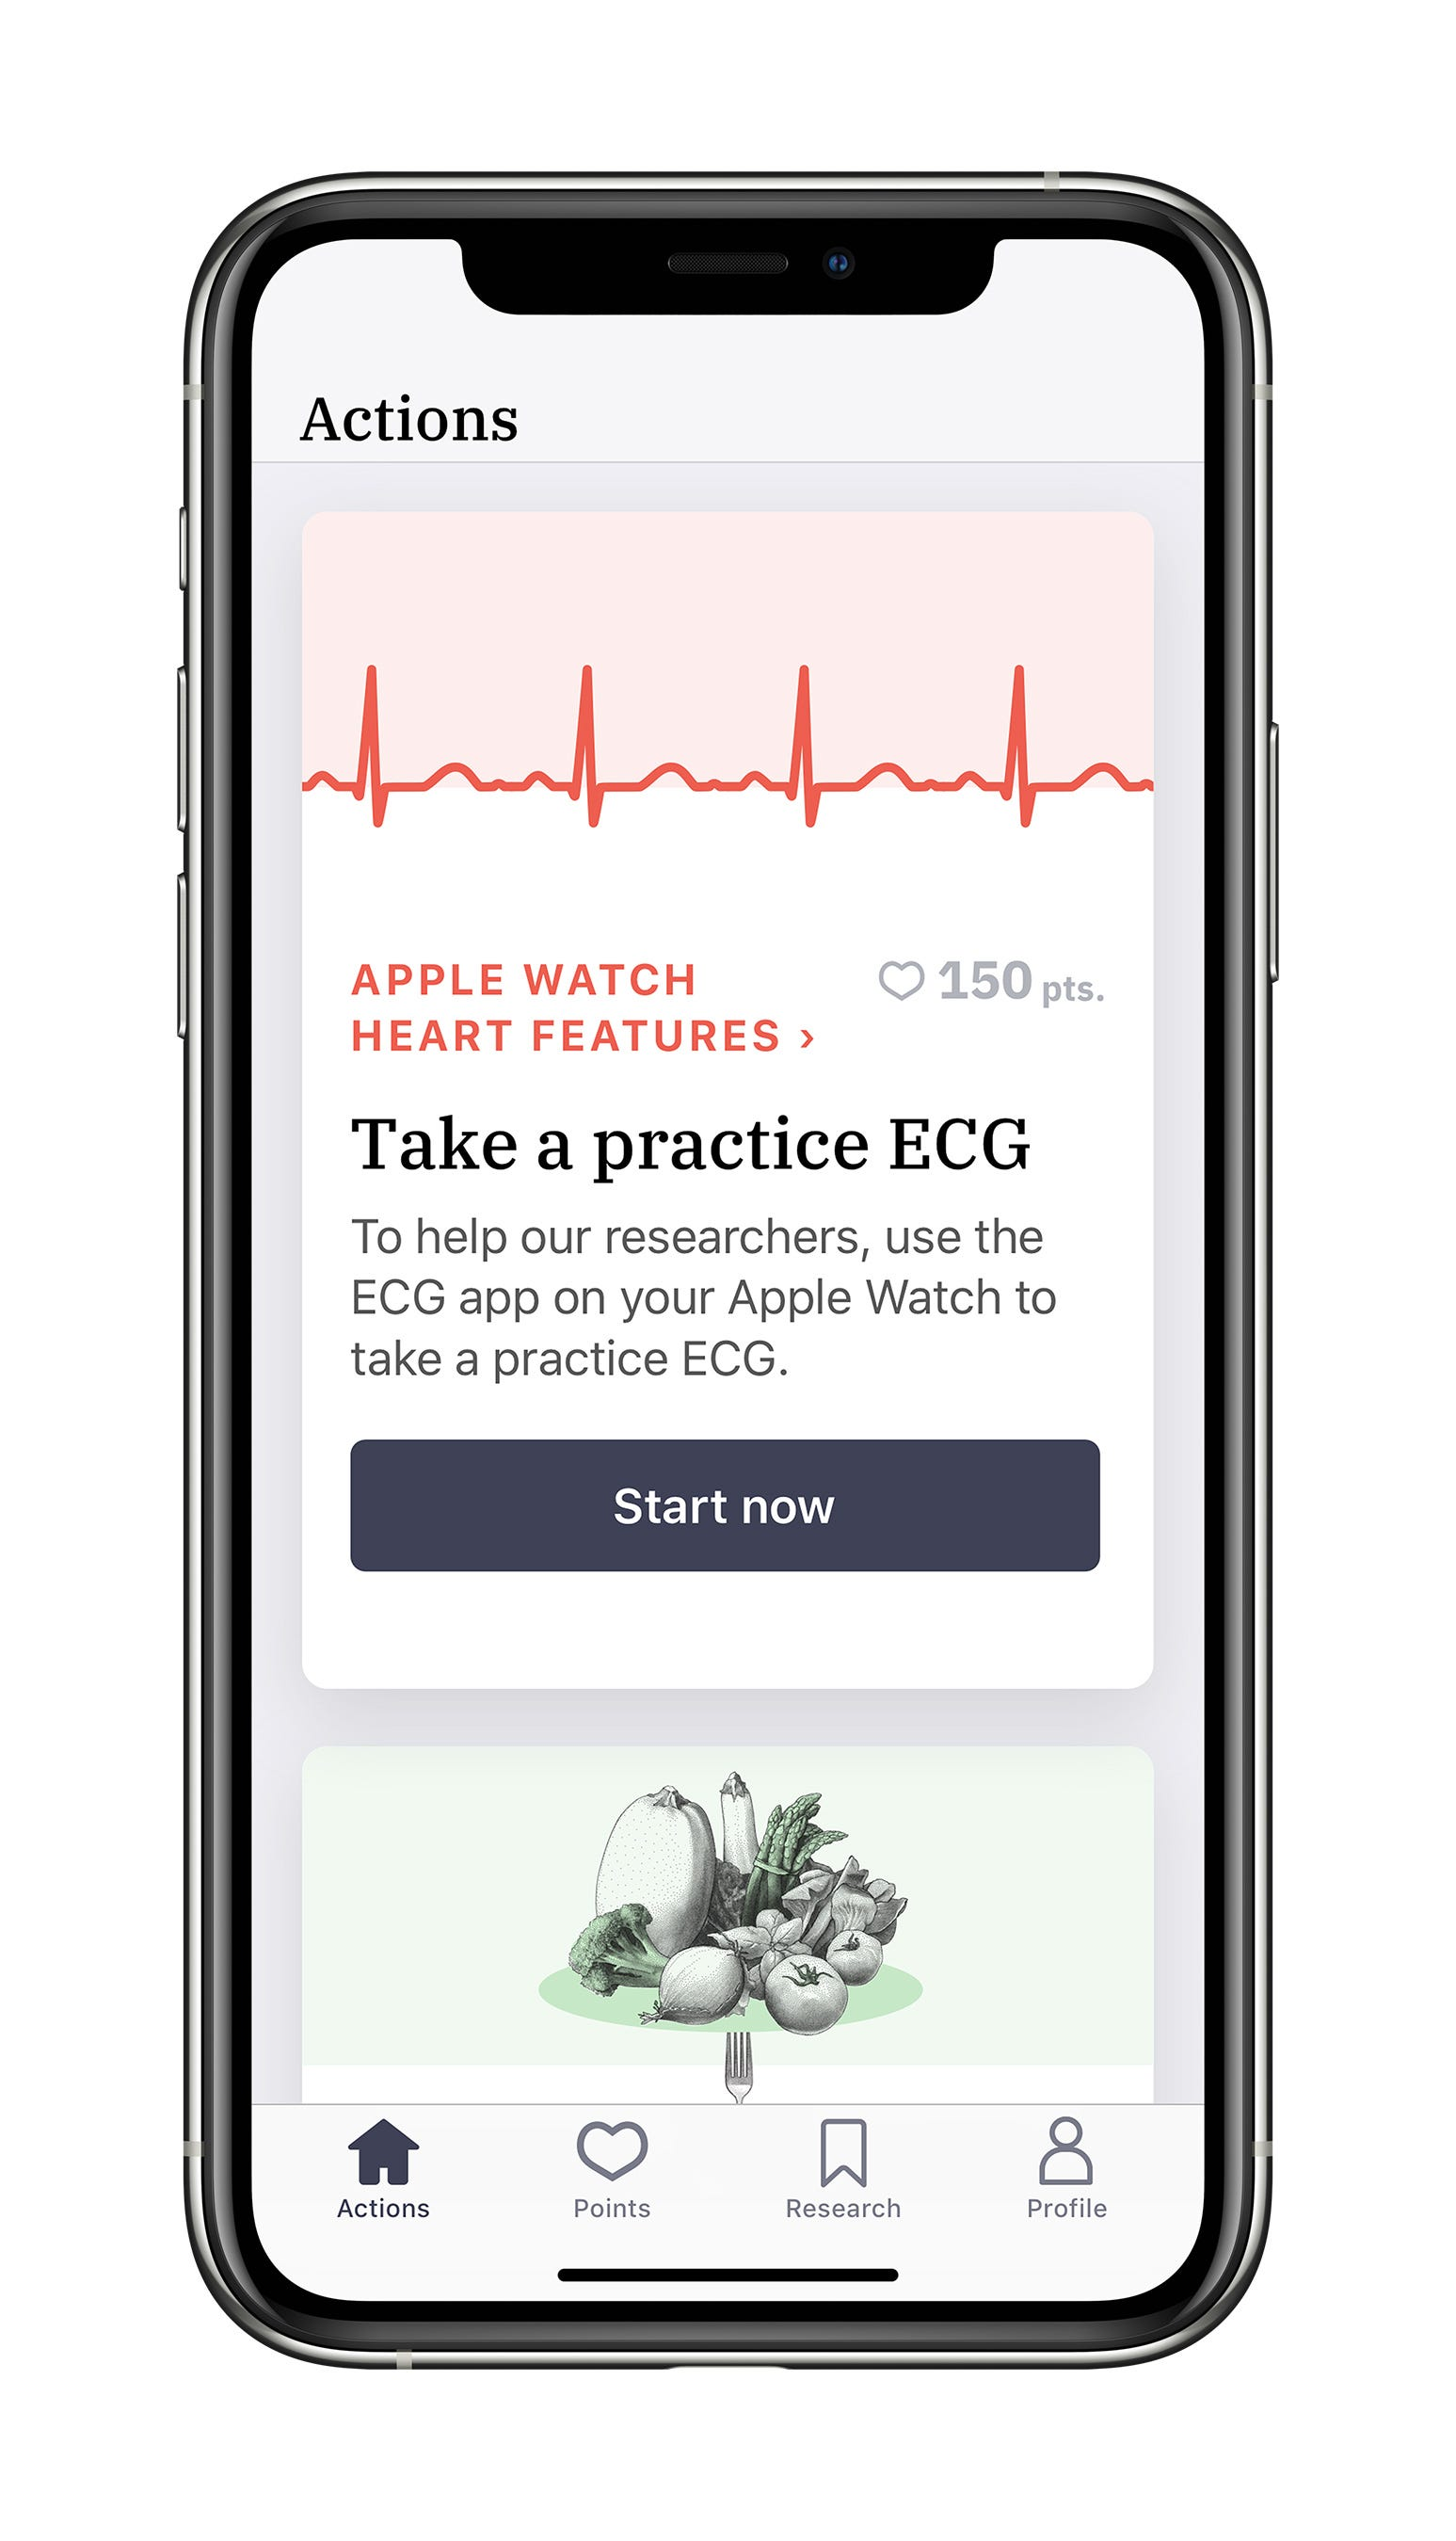 Apple and Johnson & Johnson team up on study to reduce stroke risk: How to volunteer